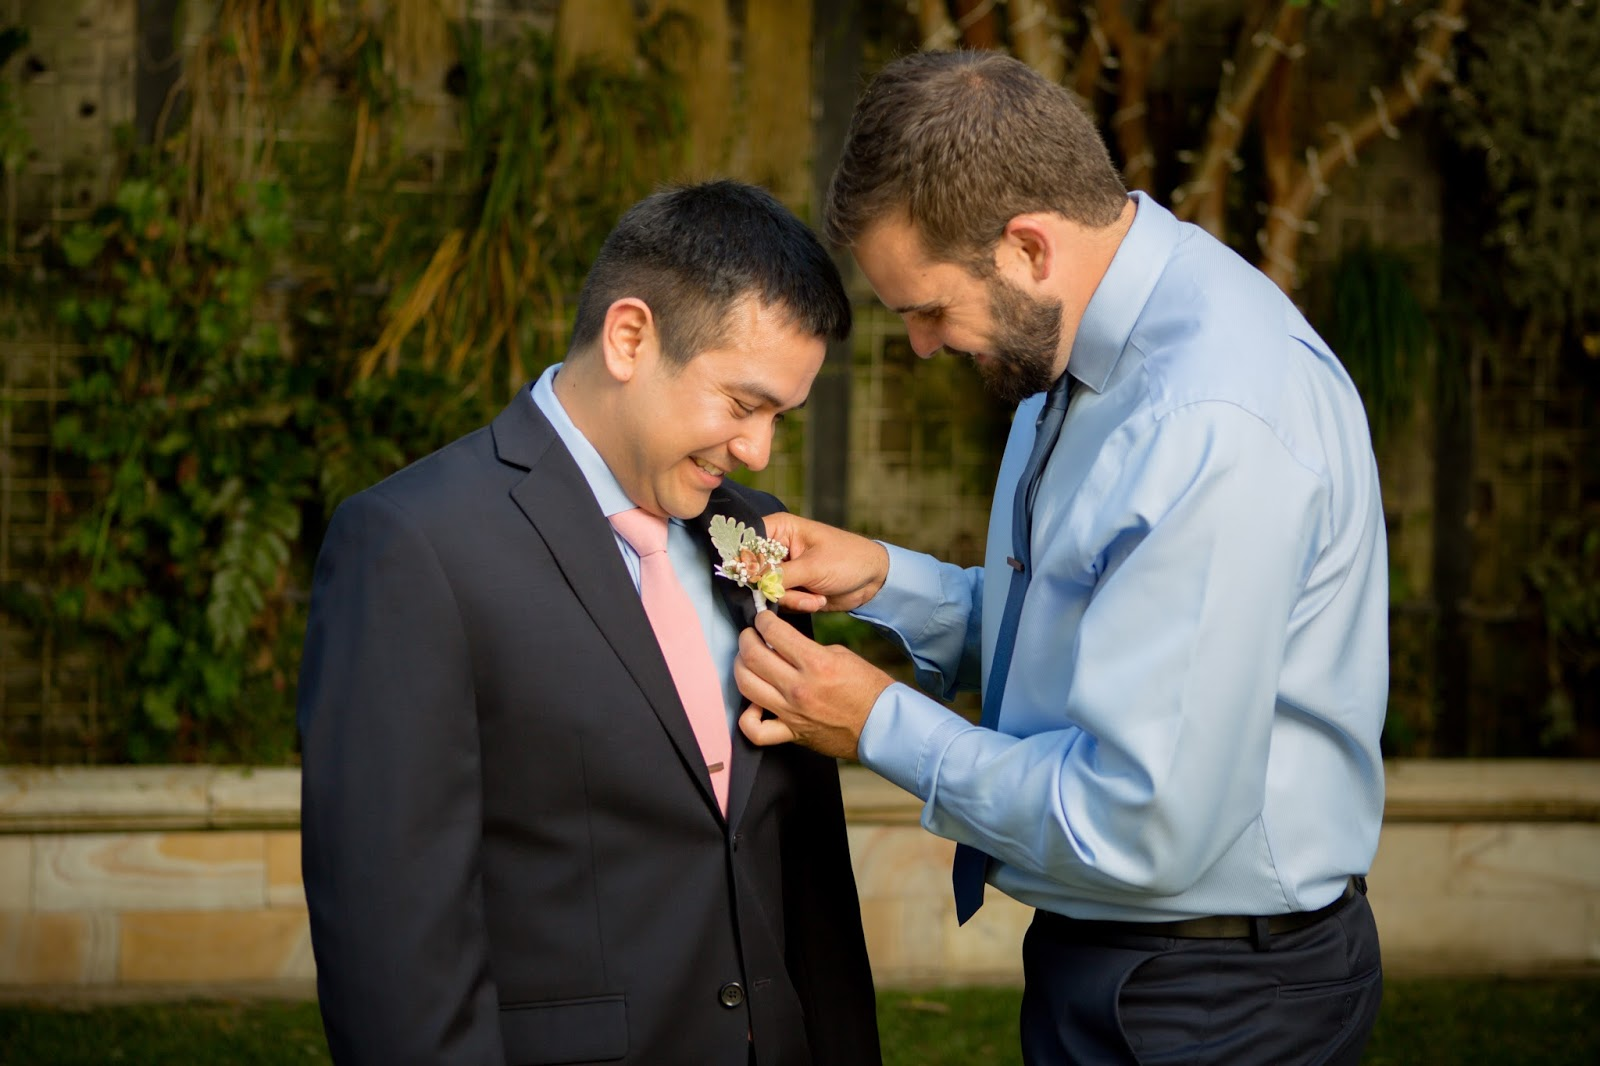 putting on boutonnière at Brownstone